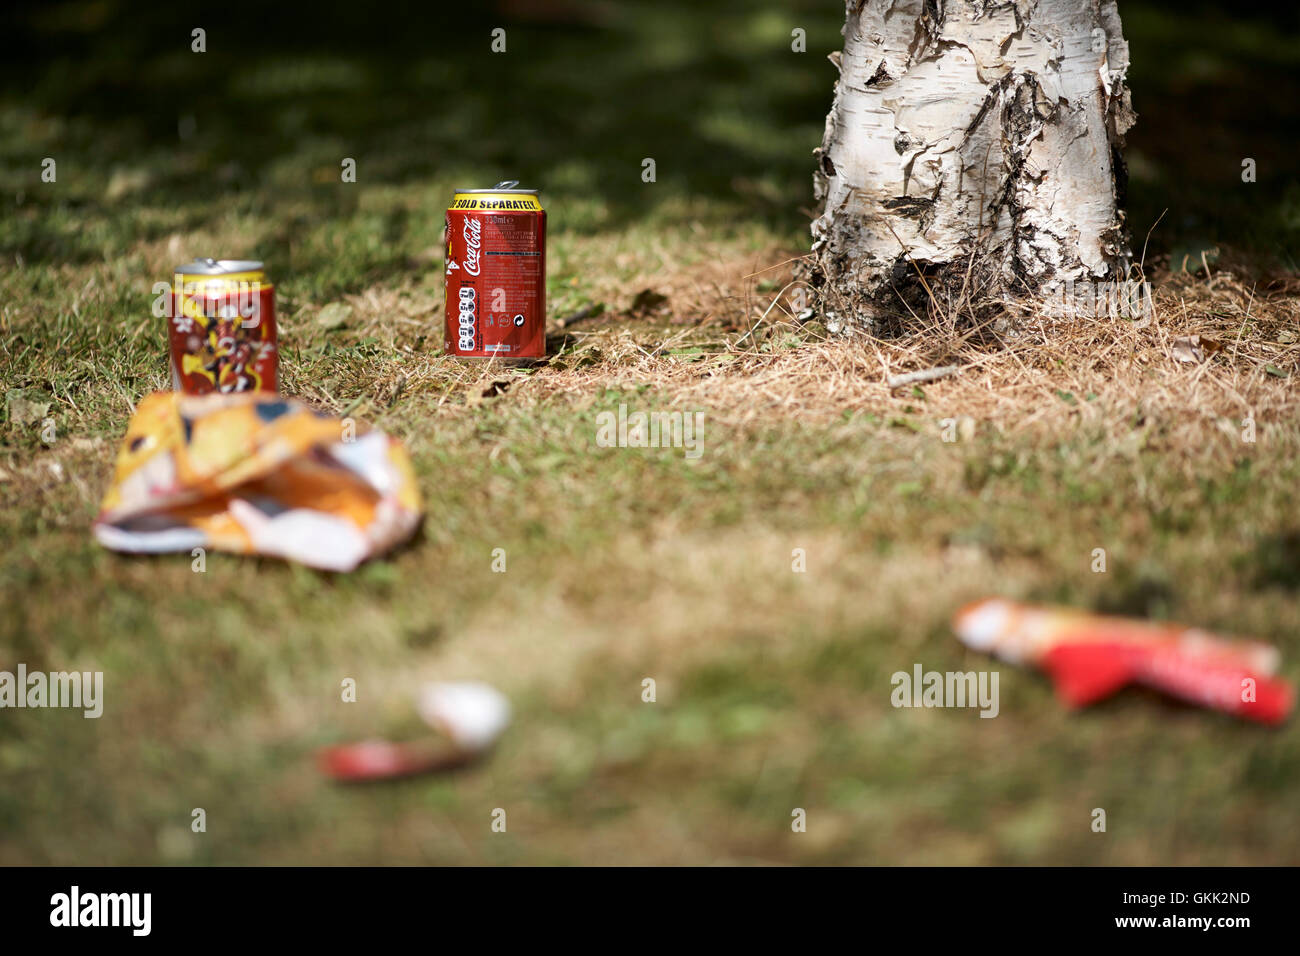 coke cans and other rubbish left behind after a summer picnic - Stock Image